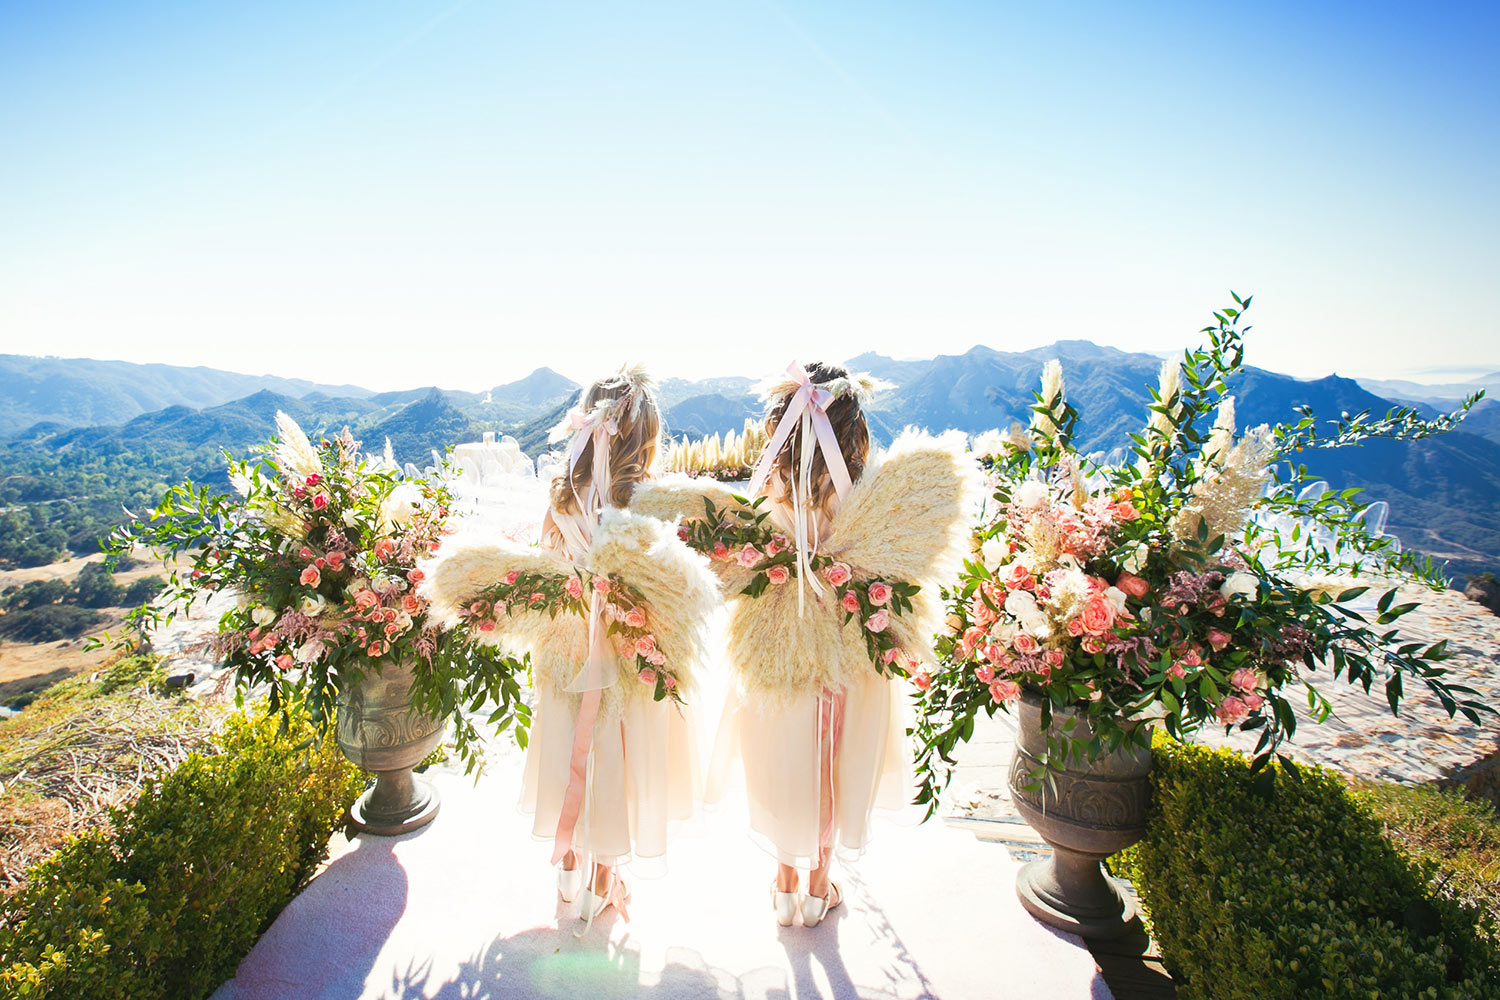 Flower girls in angel wings against mountains, by Callaway Gable